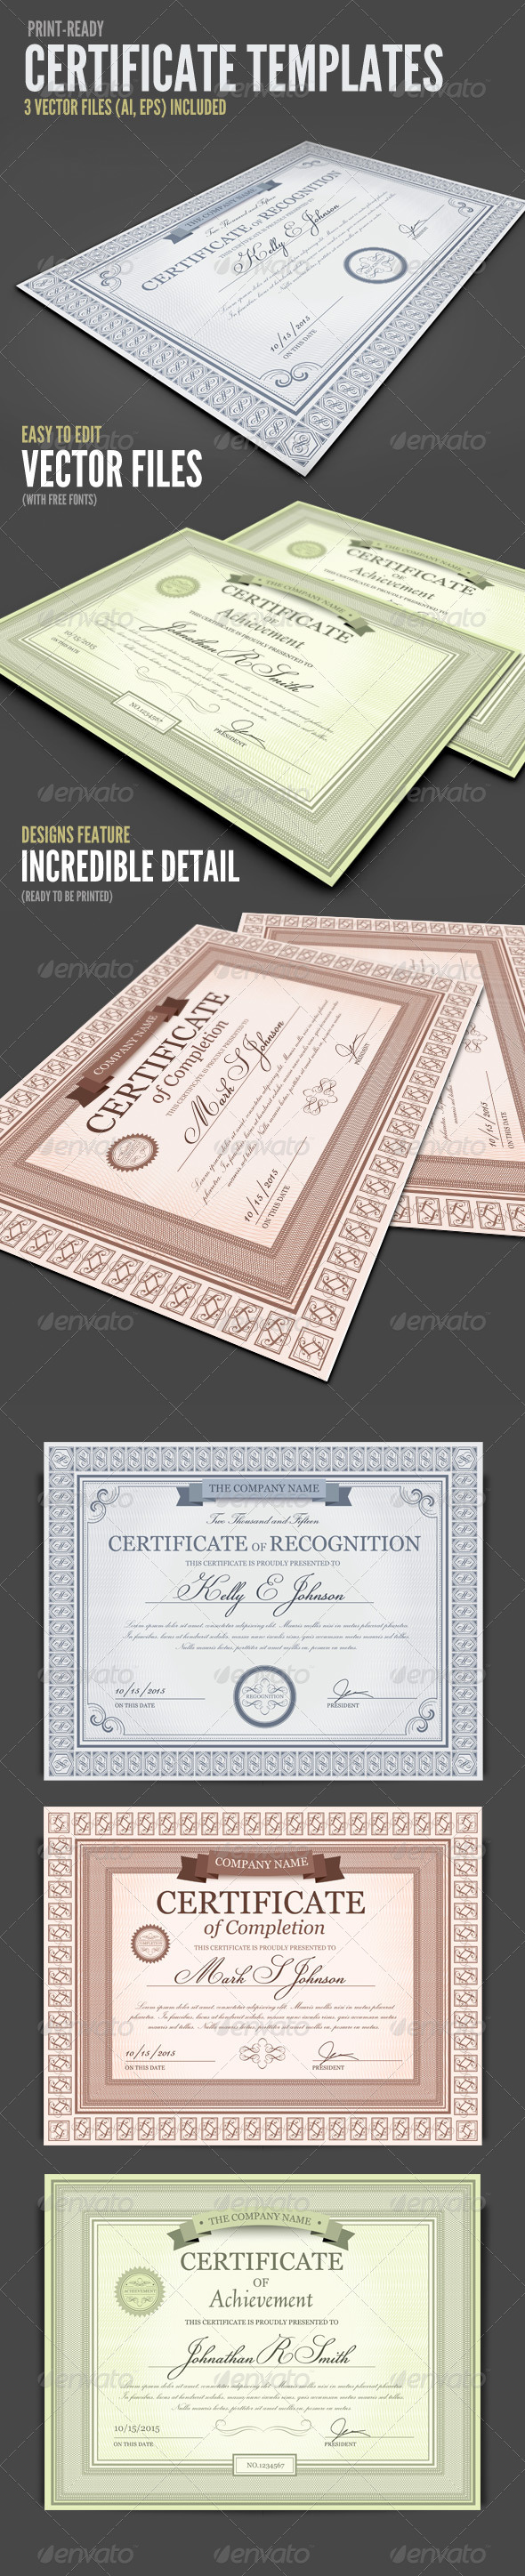 Certificate Templates & Designs from GraphicRiver